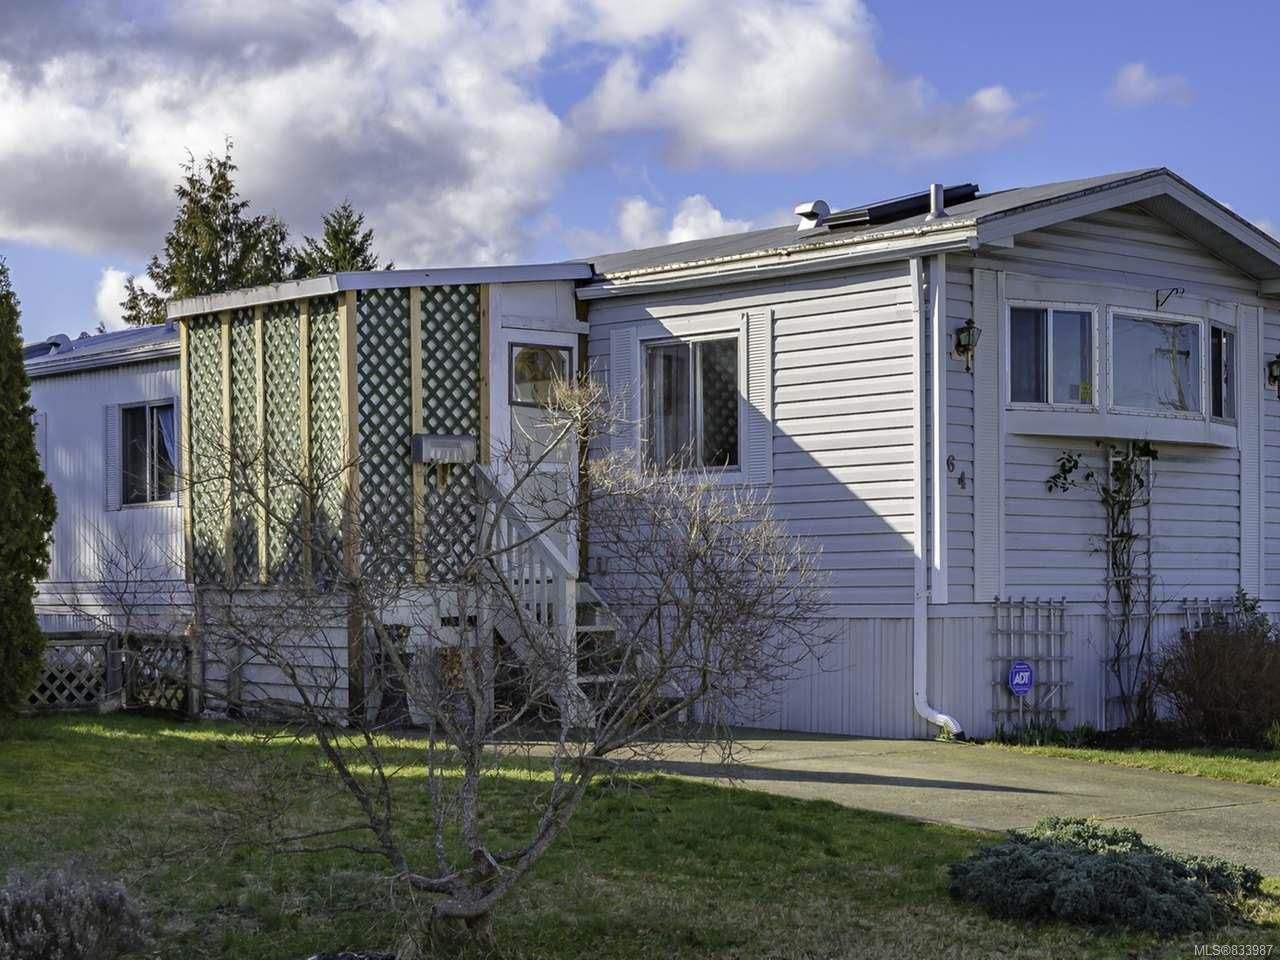 Photo 29: Photos: 64 390 Cowichan Ave in COURTENAY: CV Courtenay East Manufactured Home for sale (Comox Valley)  : MLS®# 833987